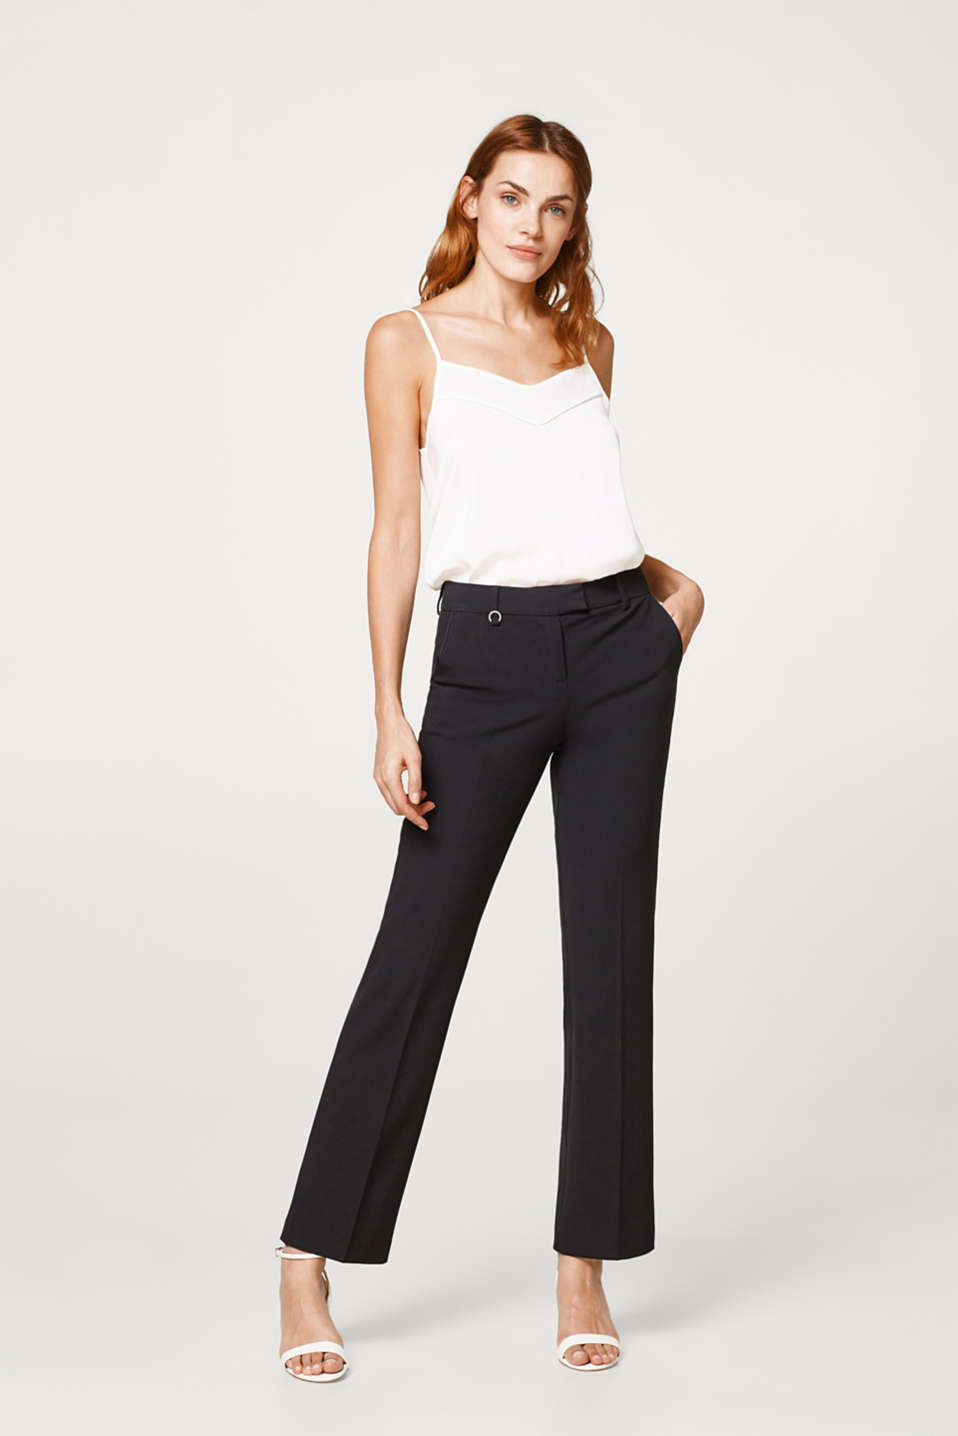 Esprit - Floaty stretch trousers with satin piping